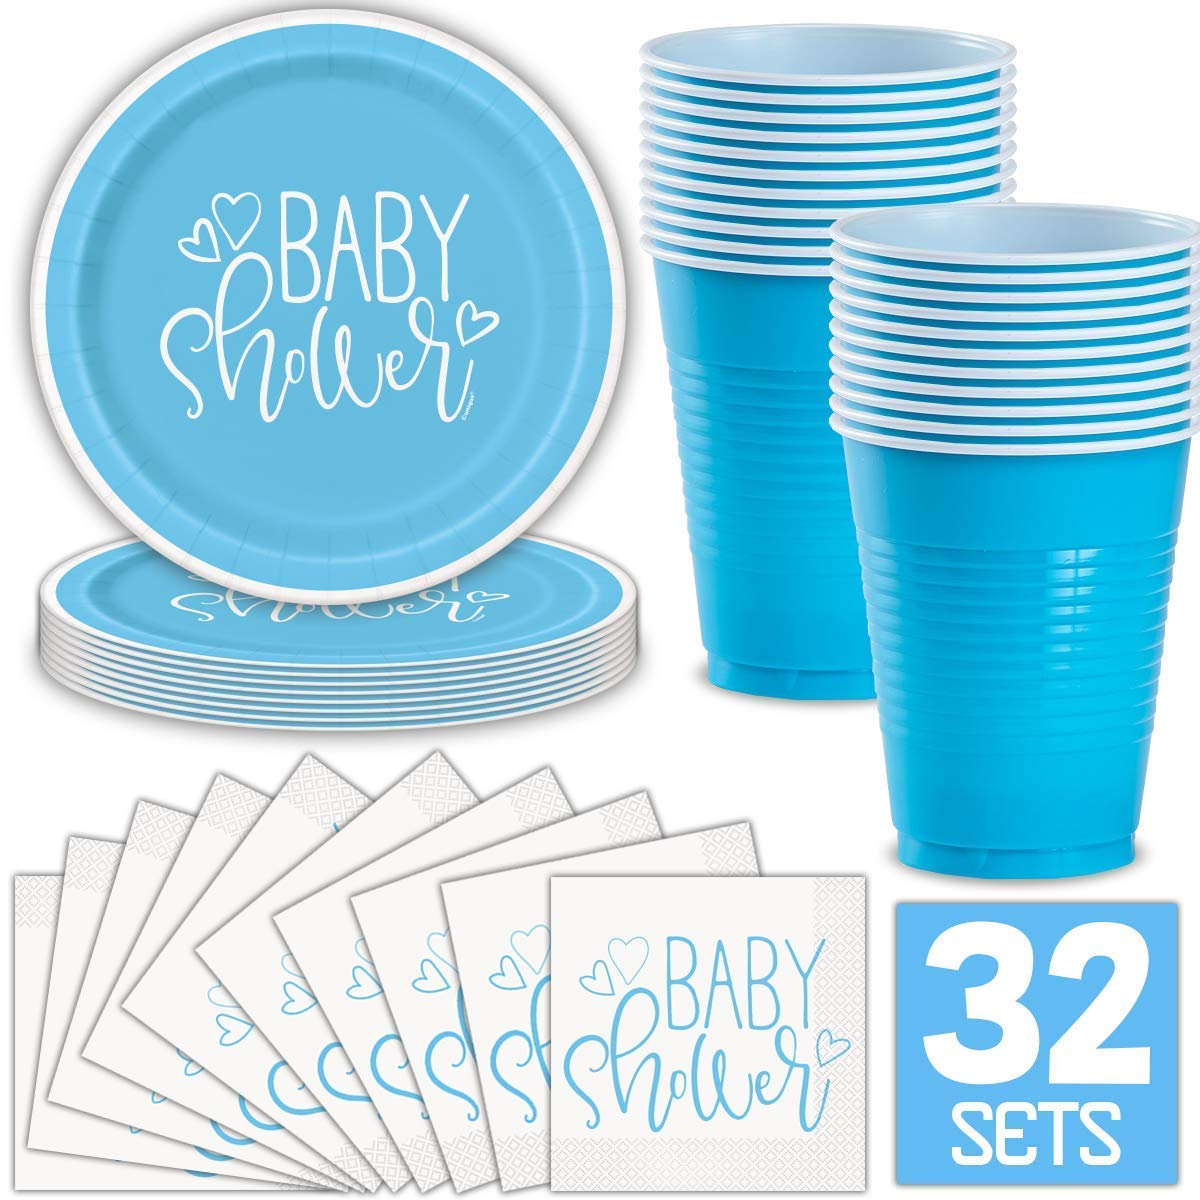 Boy Baby Shower Party Supplies for 32 Guests (Blue) Includes: Paper Plates, Luncheon Napkins, 16 oz Cups, Classy and Stylish Light Blue Design